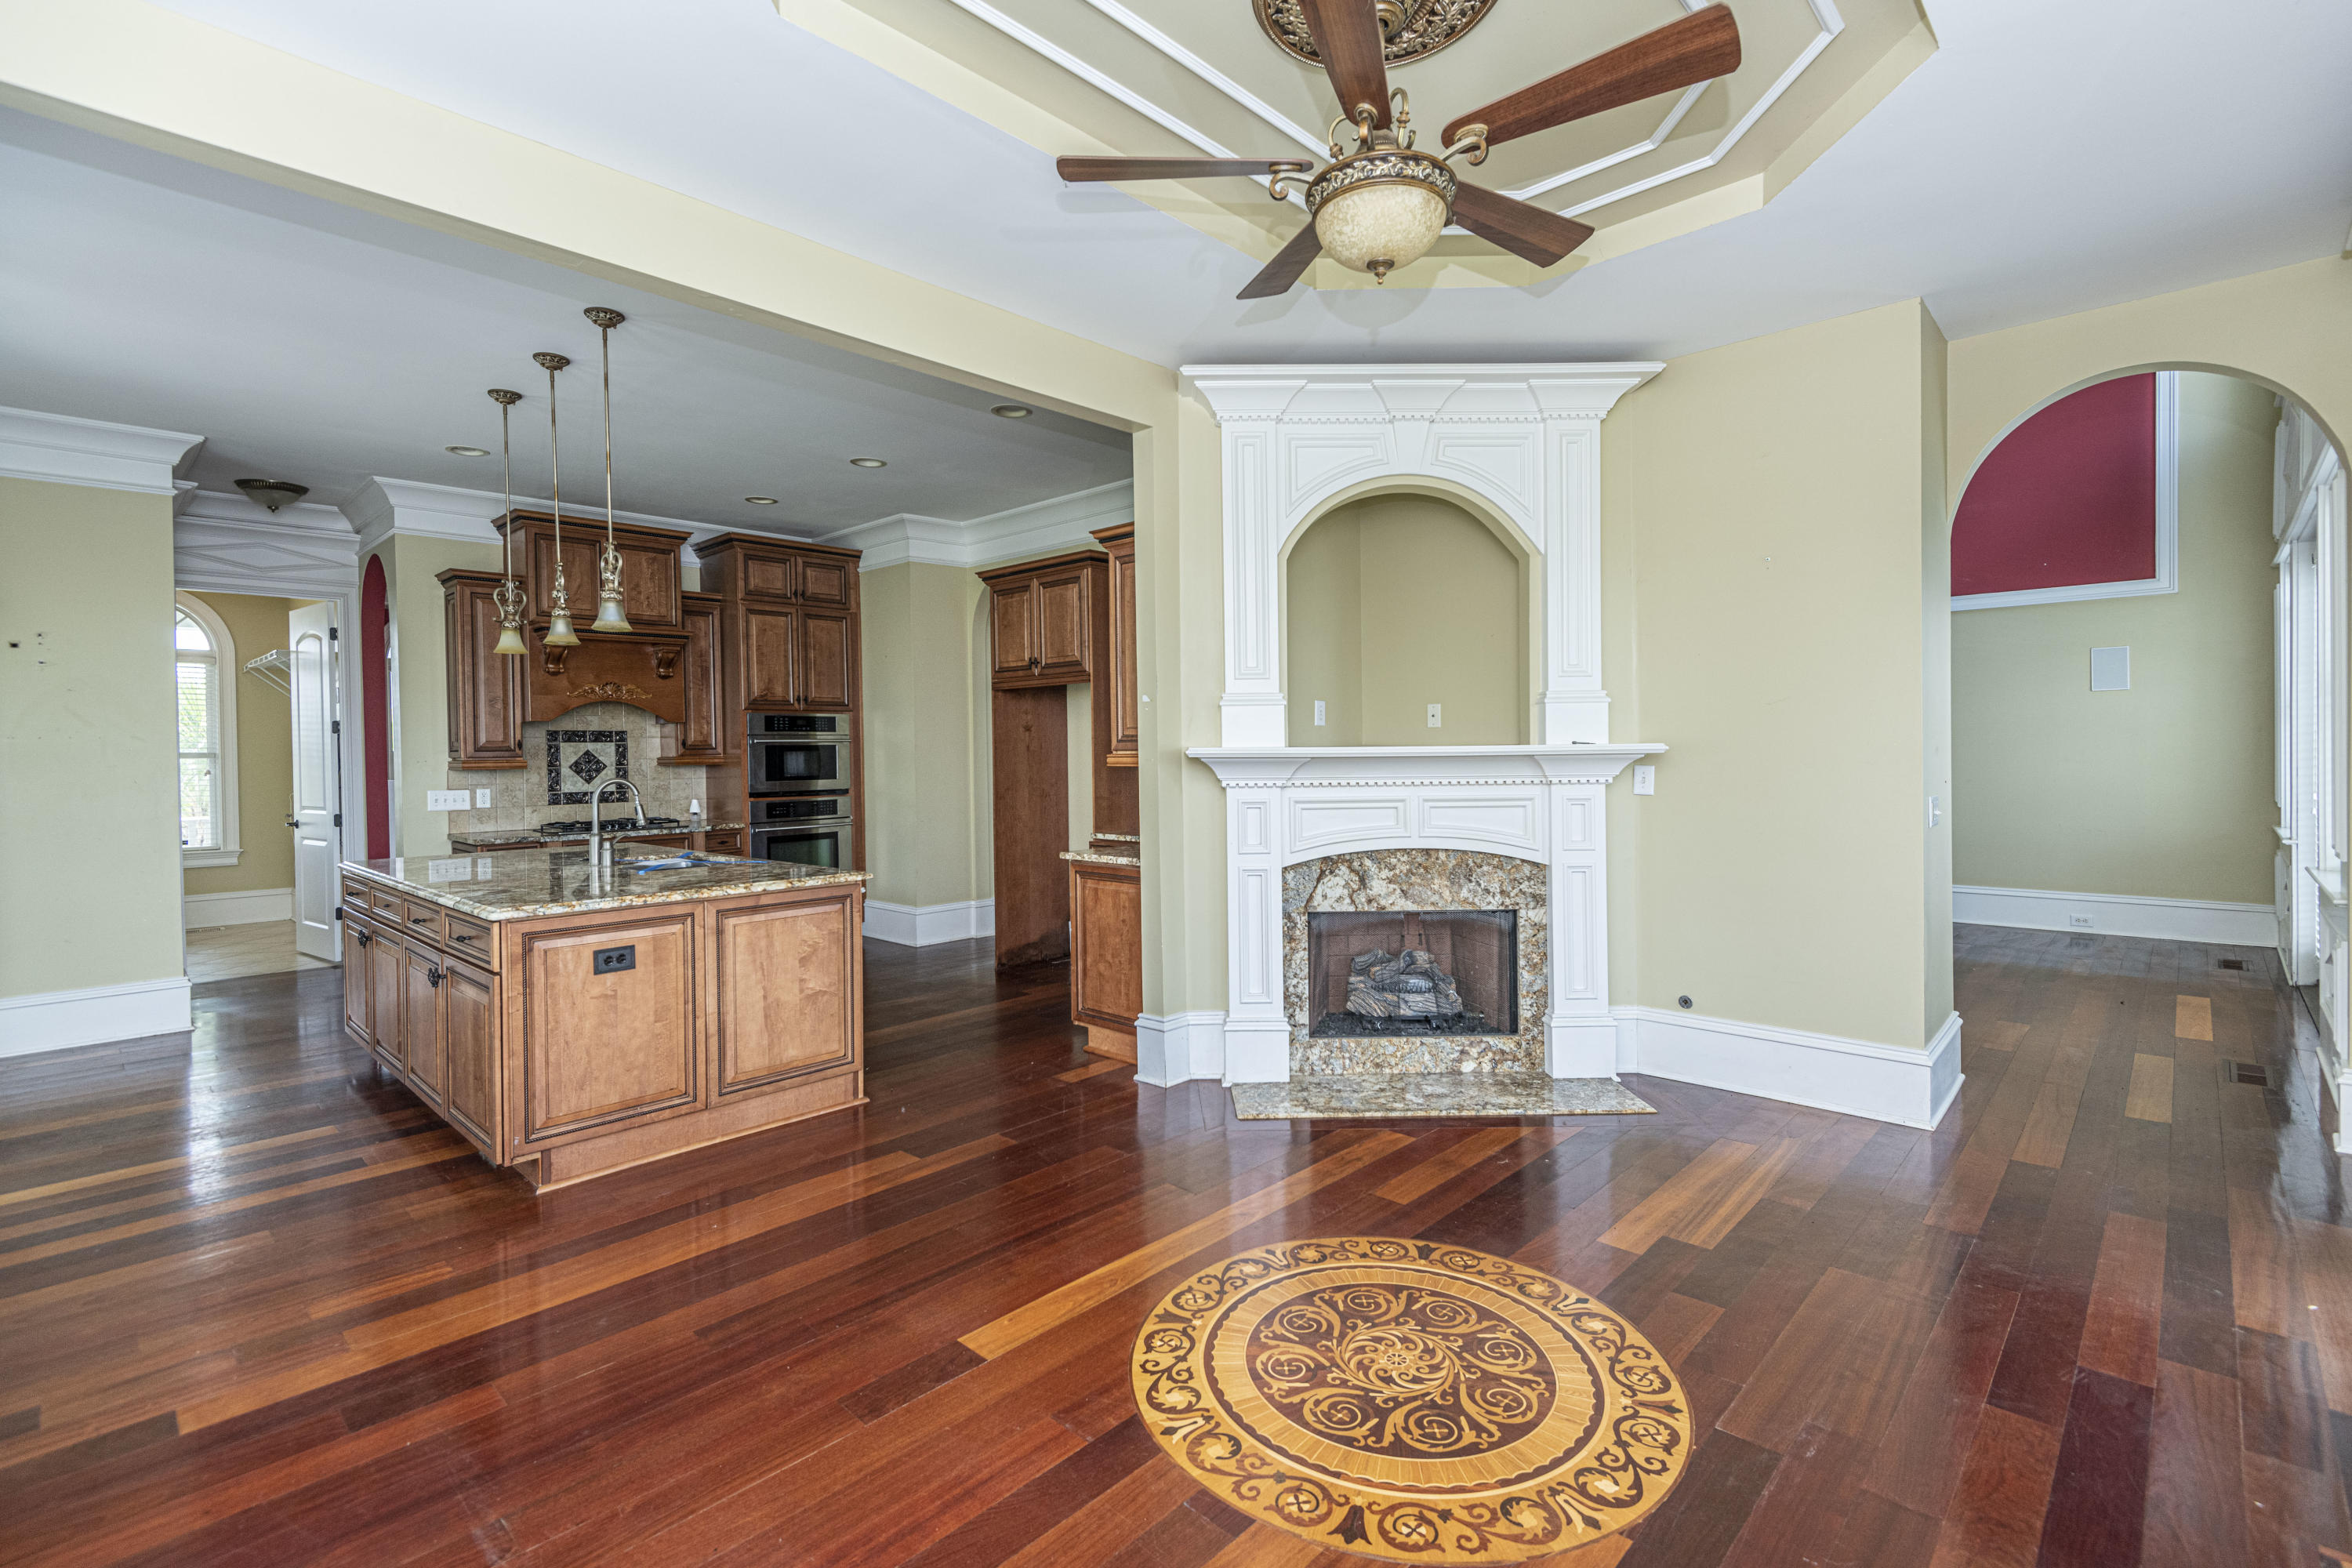 Rivertowne Country Club Homes For Sale - 1593 Rivertowne Country Club, Mount Pleasant, SC - 1